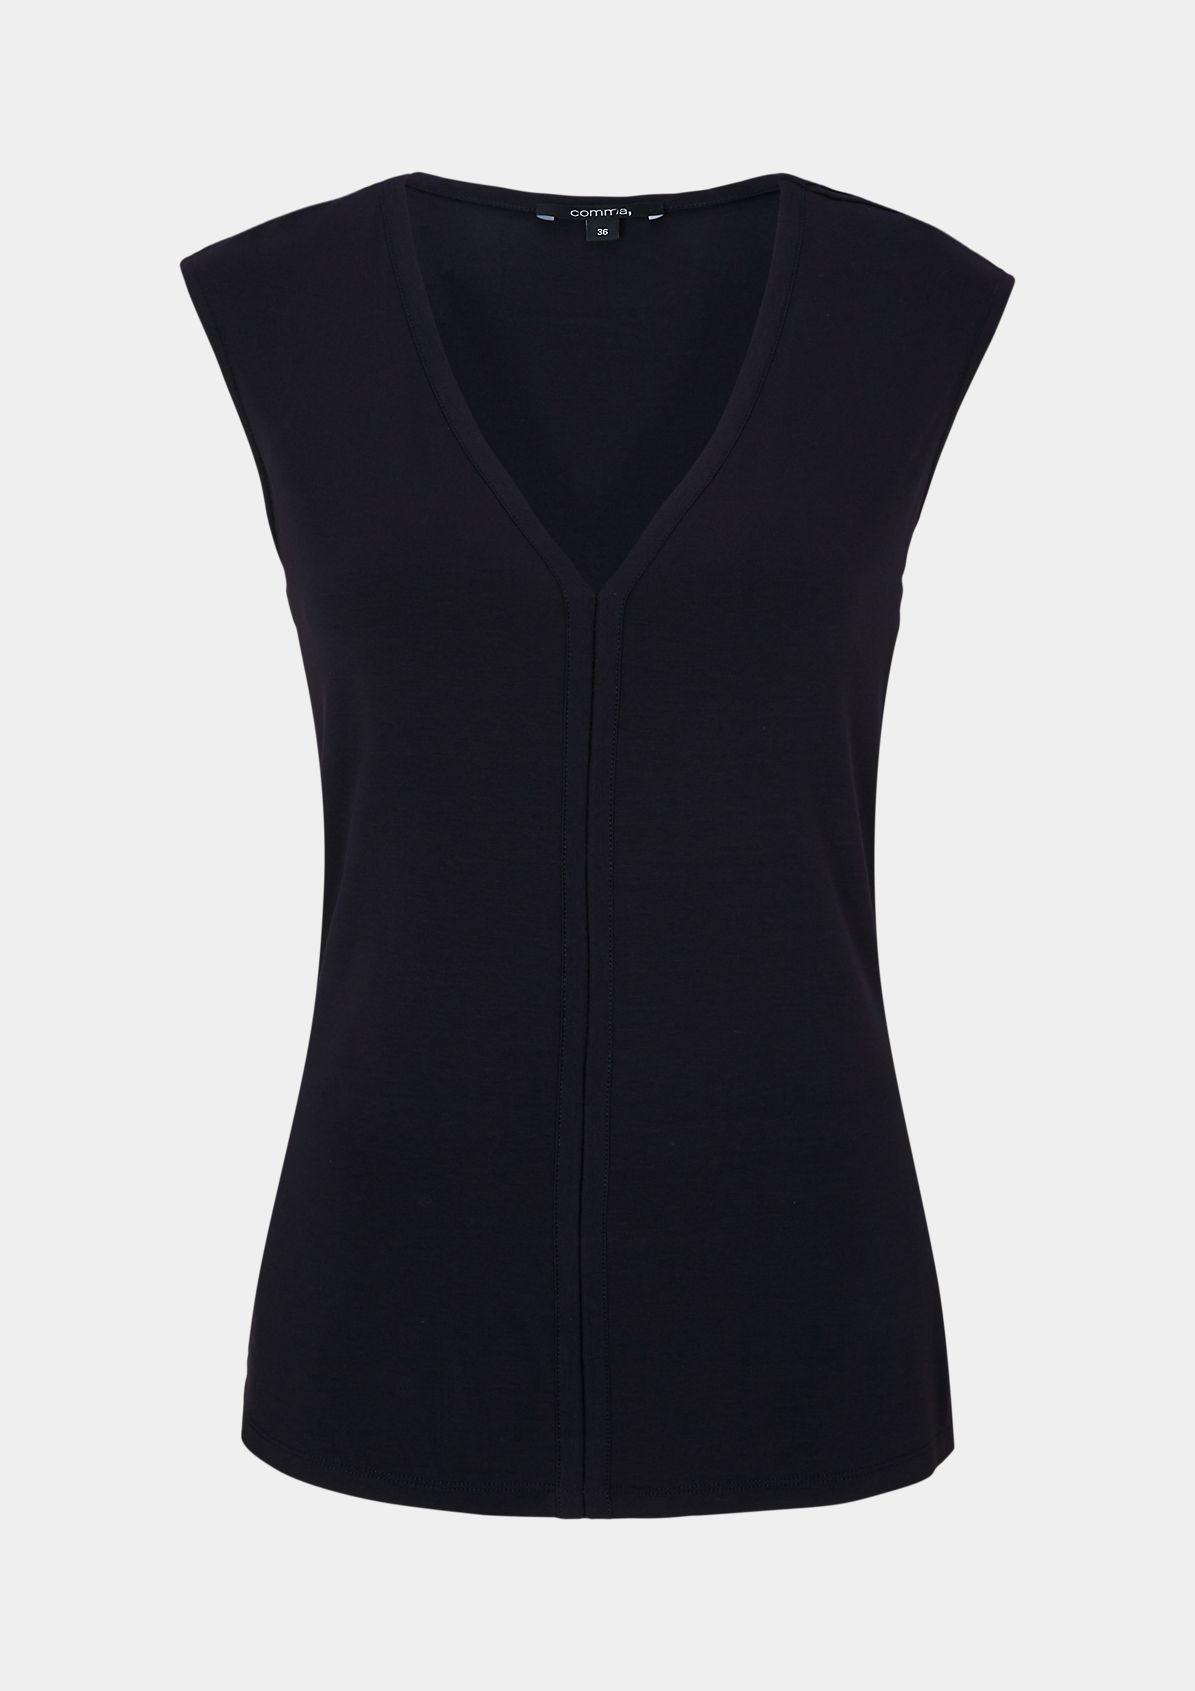 Casual jersey top with a V-neckline from comma